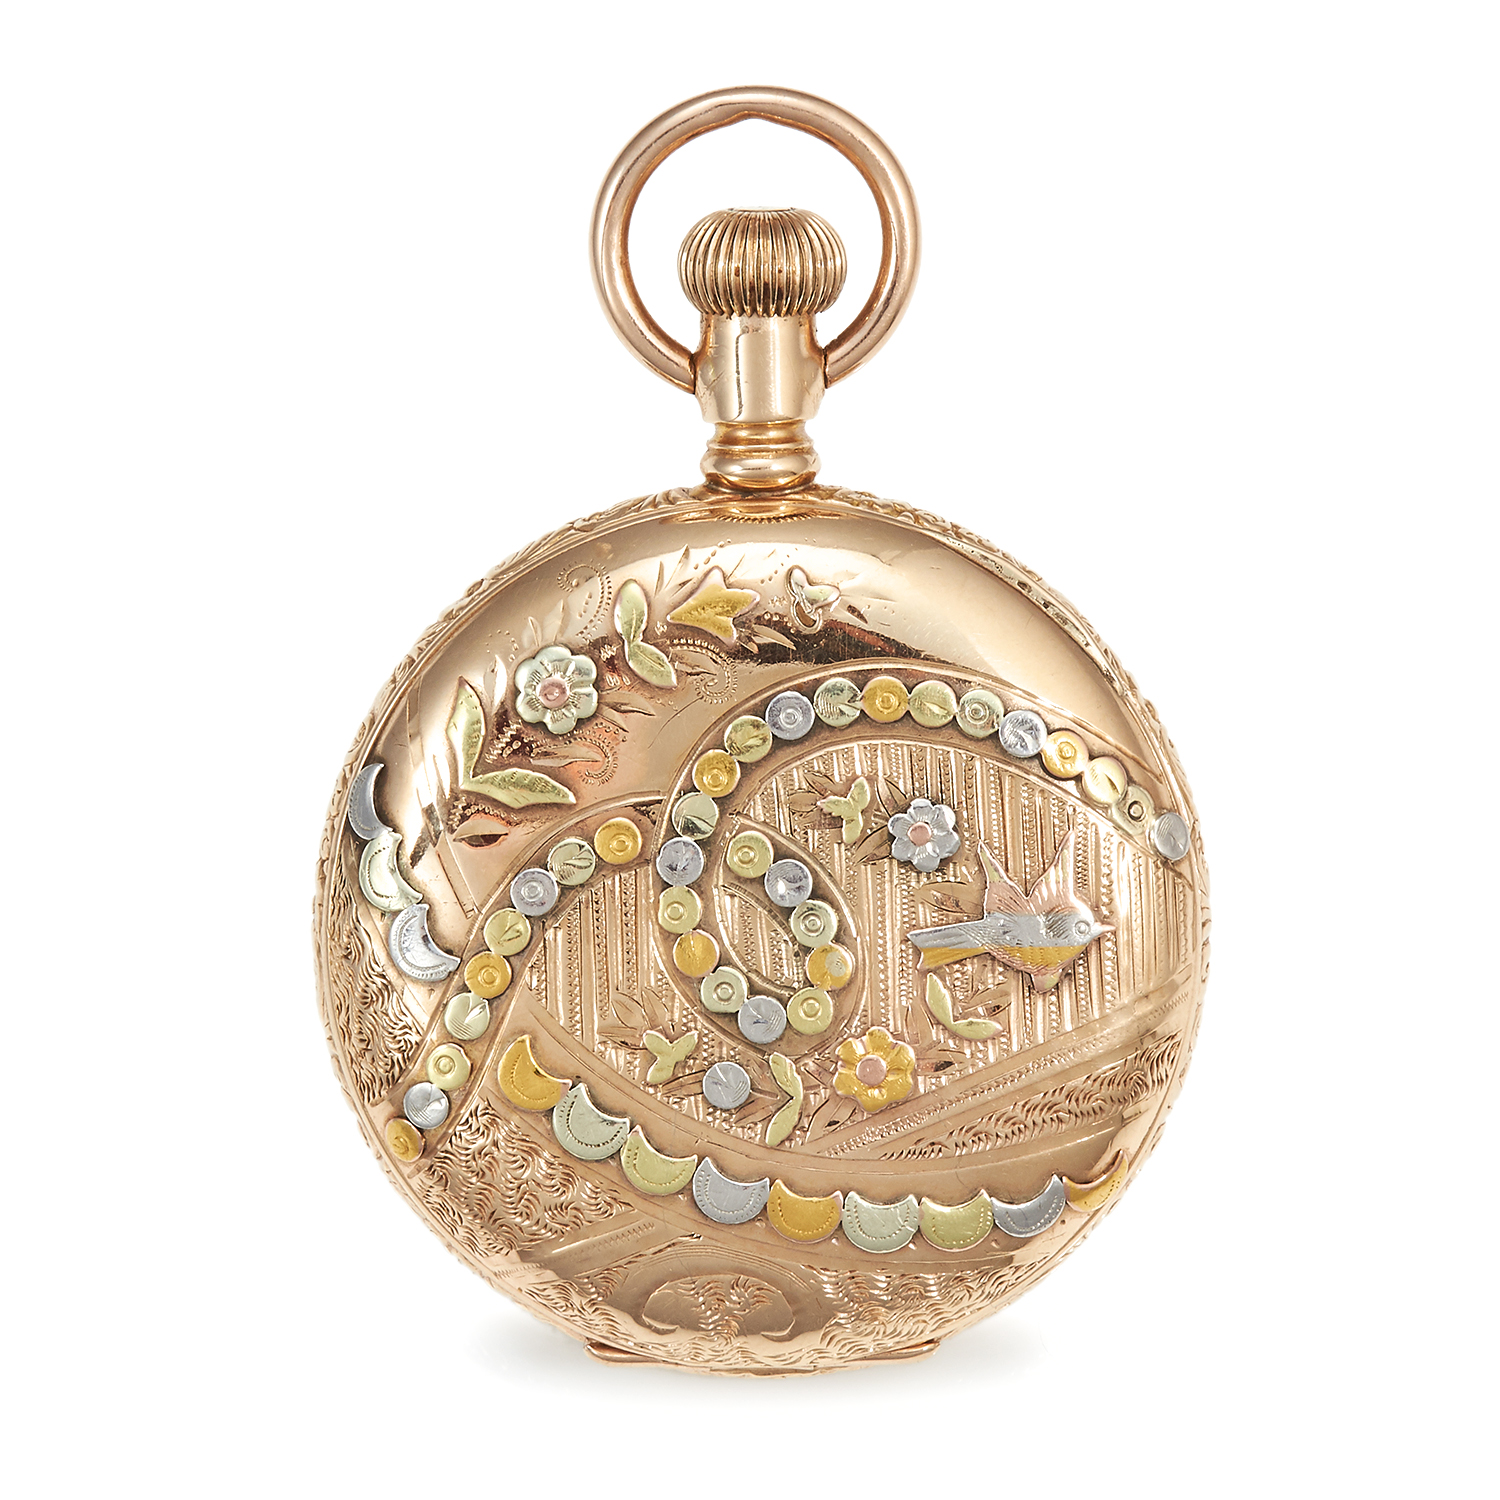 Los 373 - AN ANTIQUE POCKET WATCH, WALTHAM in 14ct gold, the circular case decorated with varicoloured gold